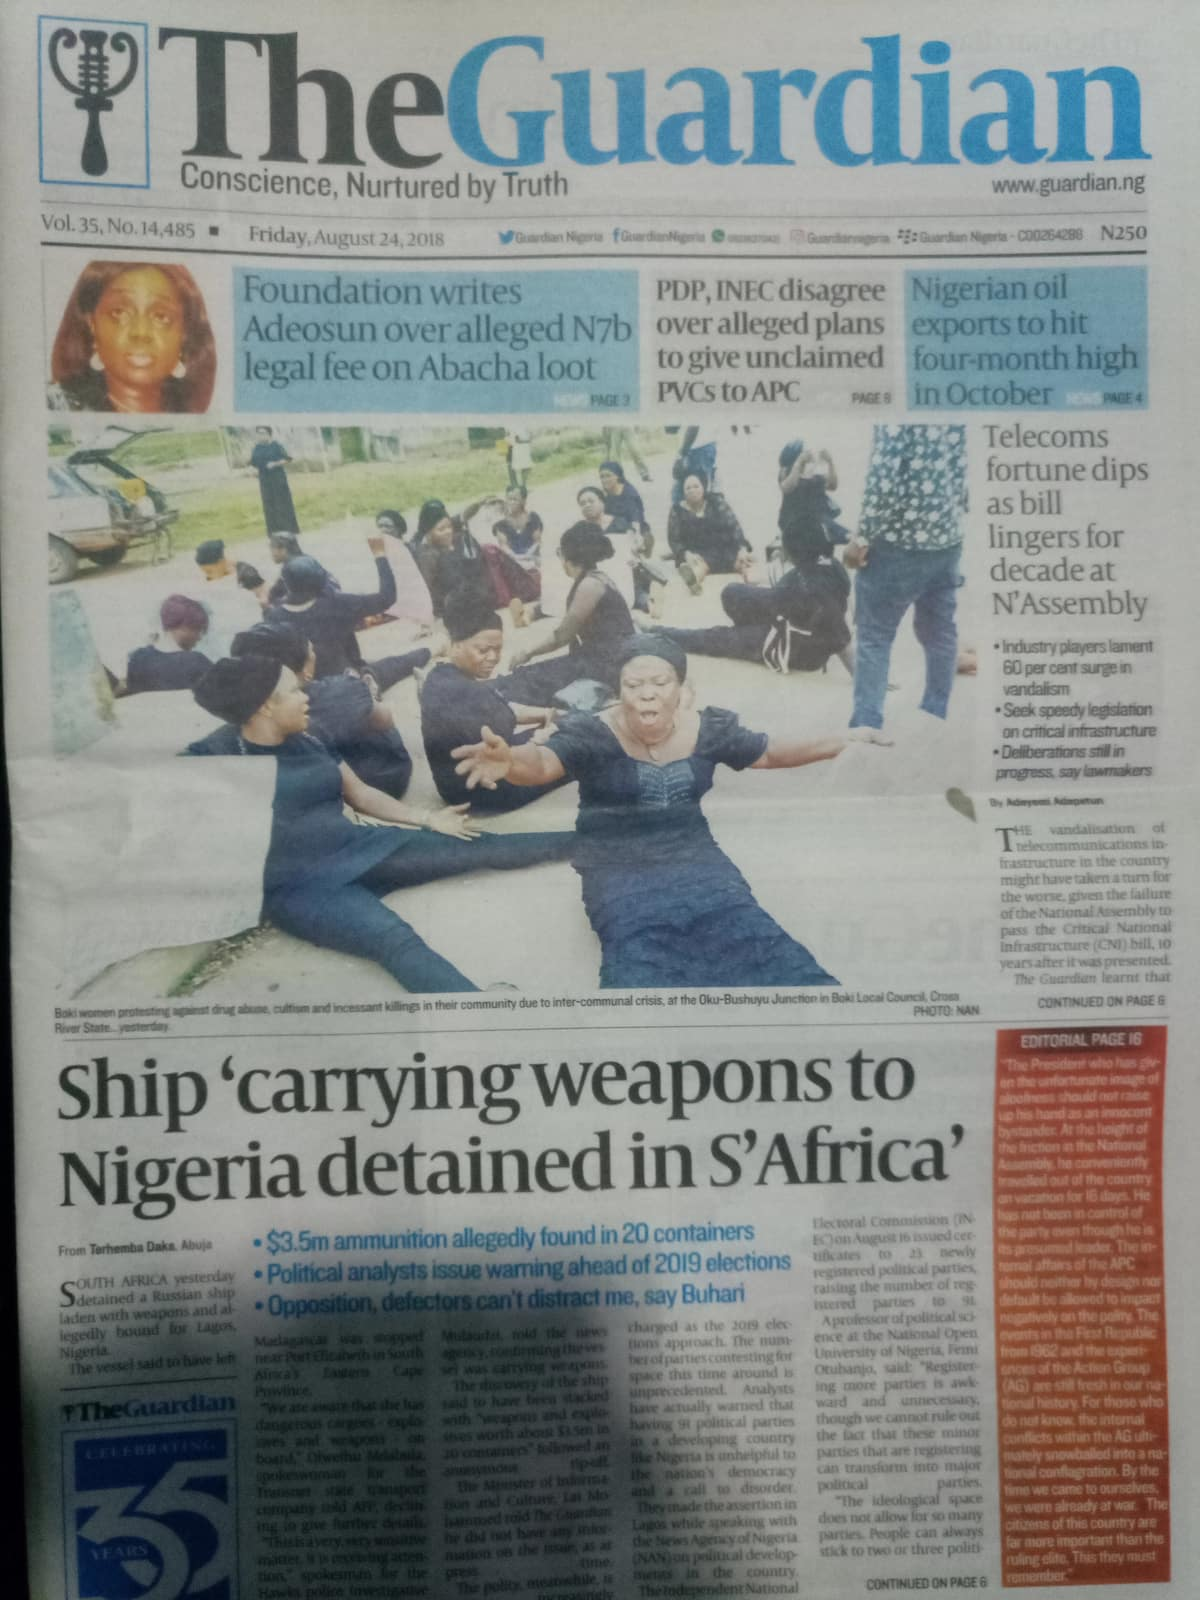 S/Africa detains Nigerian-bound ship laden with weapons worth $3.5m